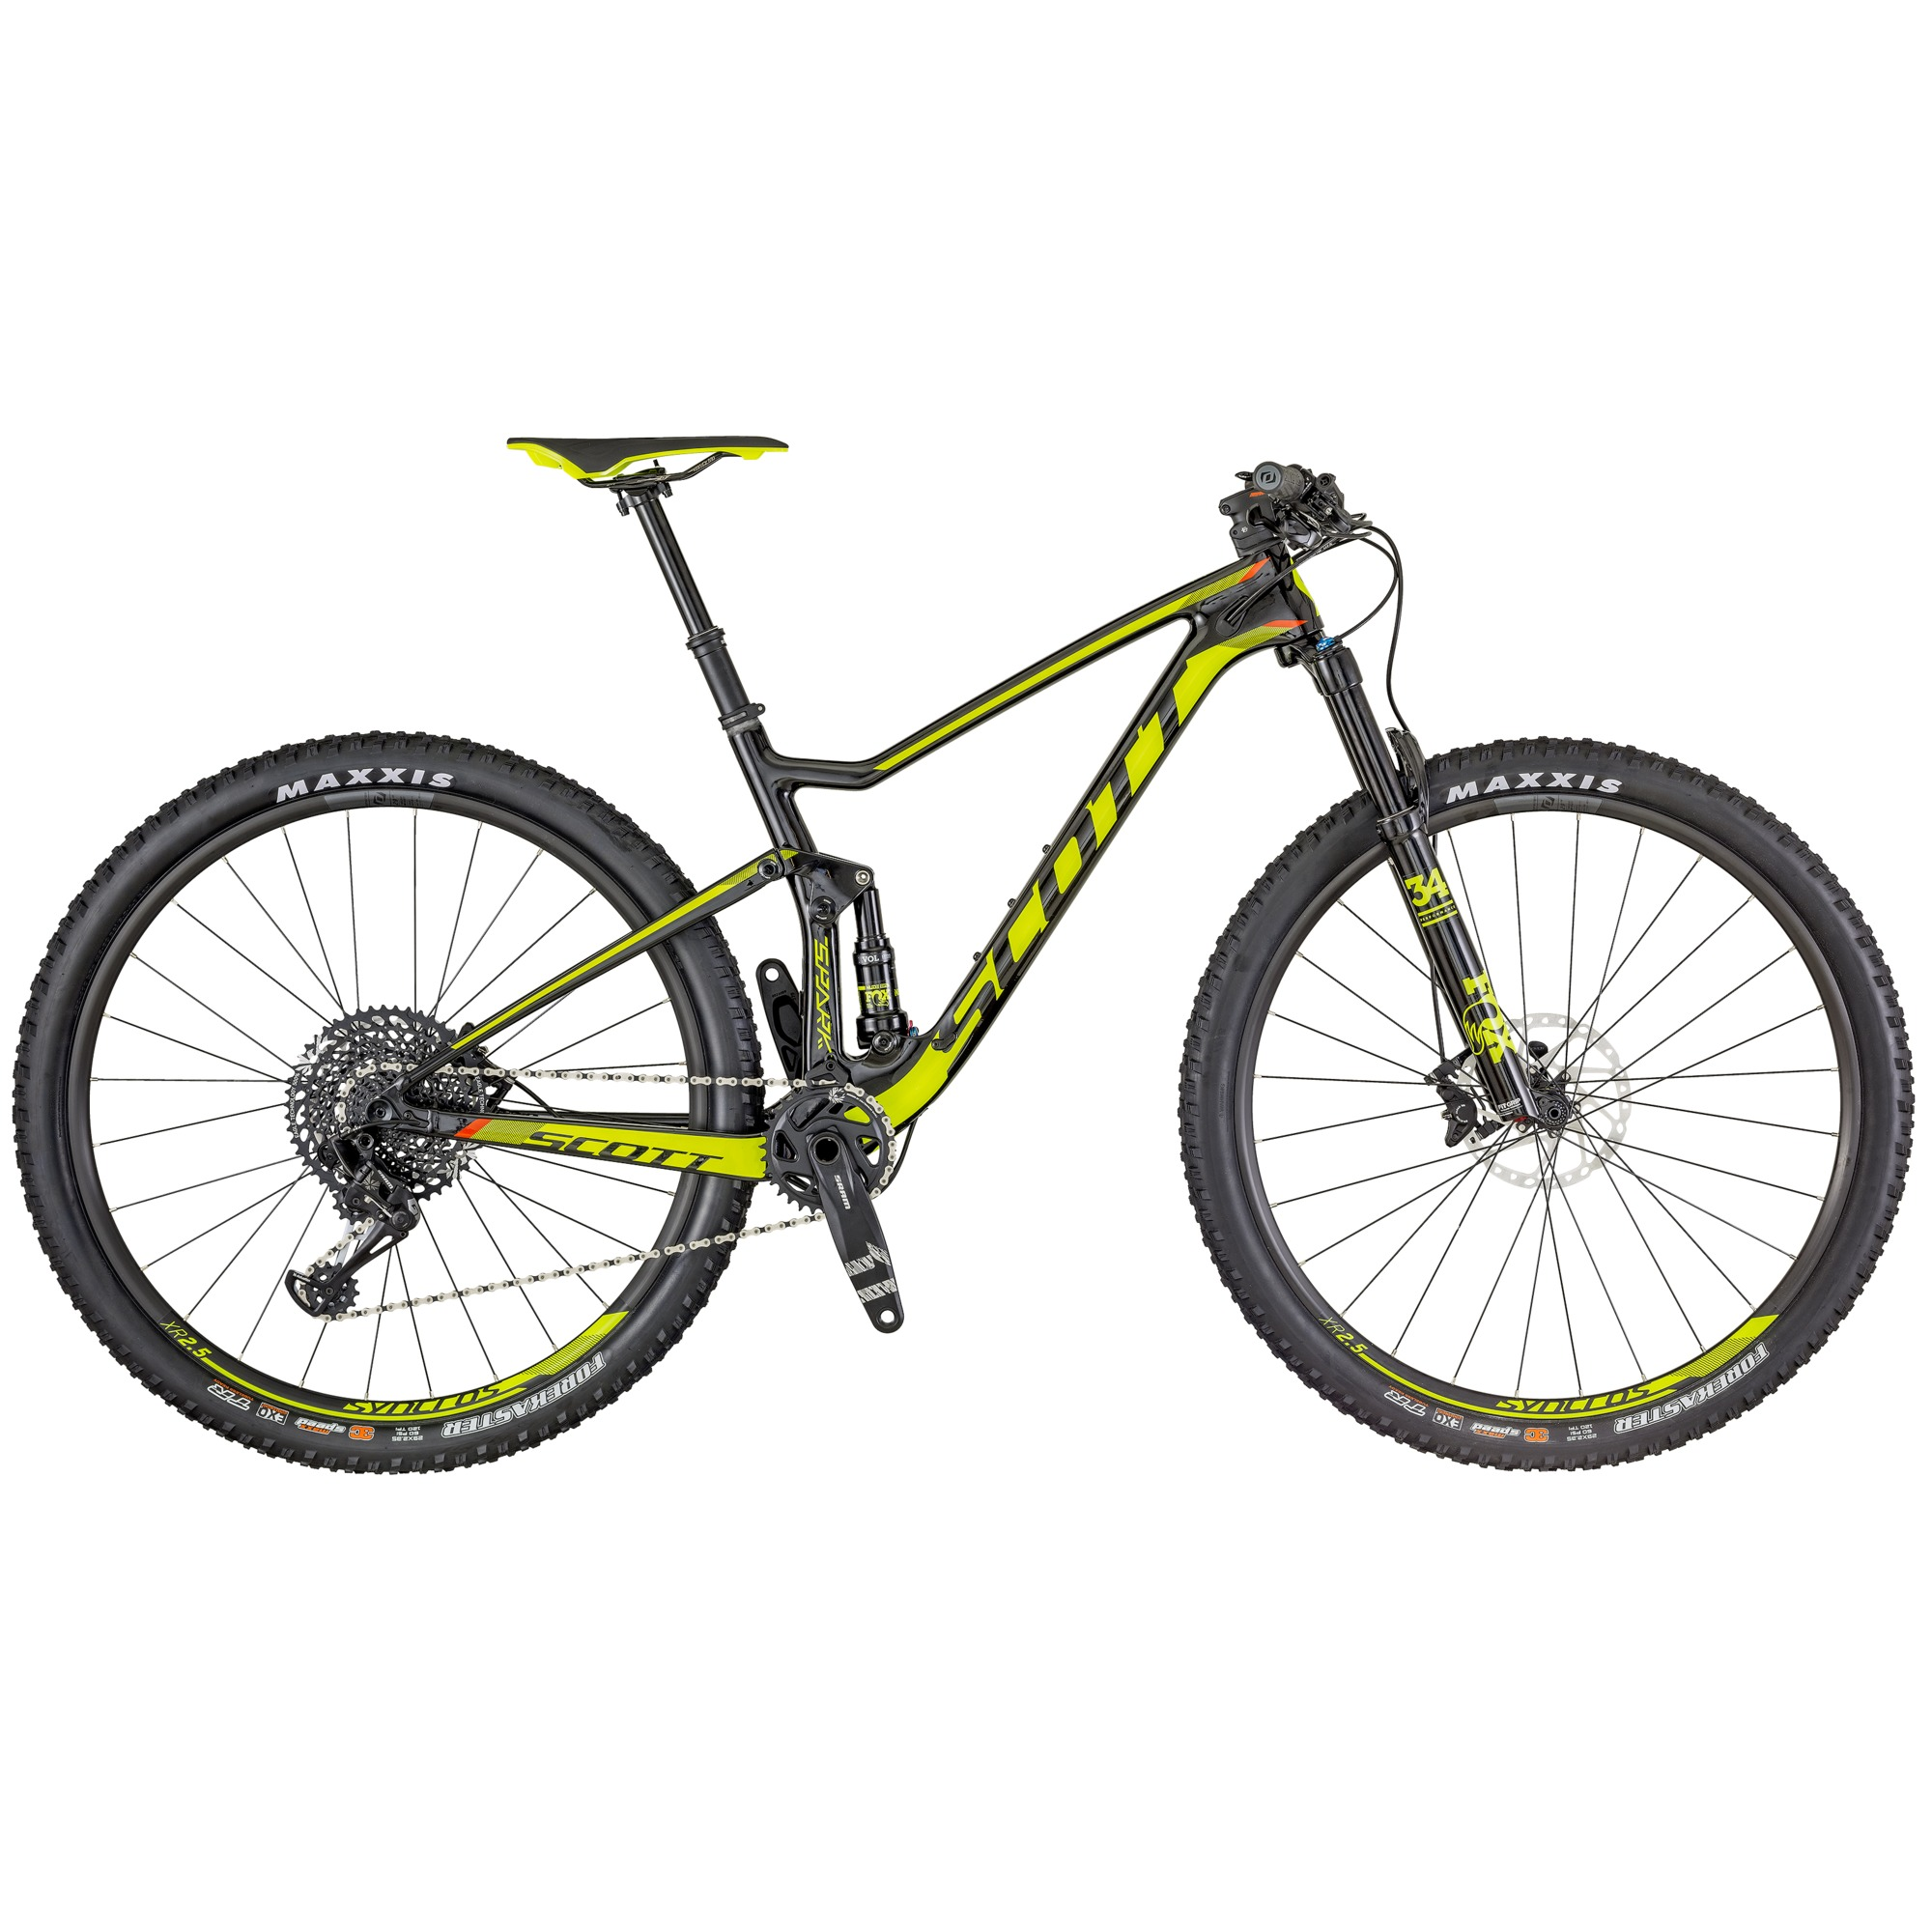 SCOTT Spark 920 Bike XL - Zweirad Homann